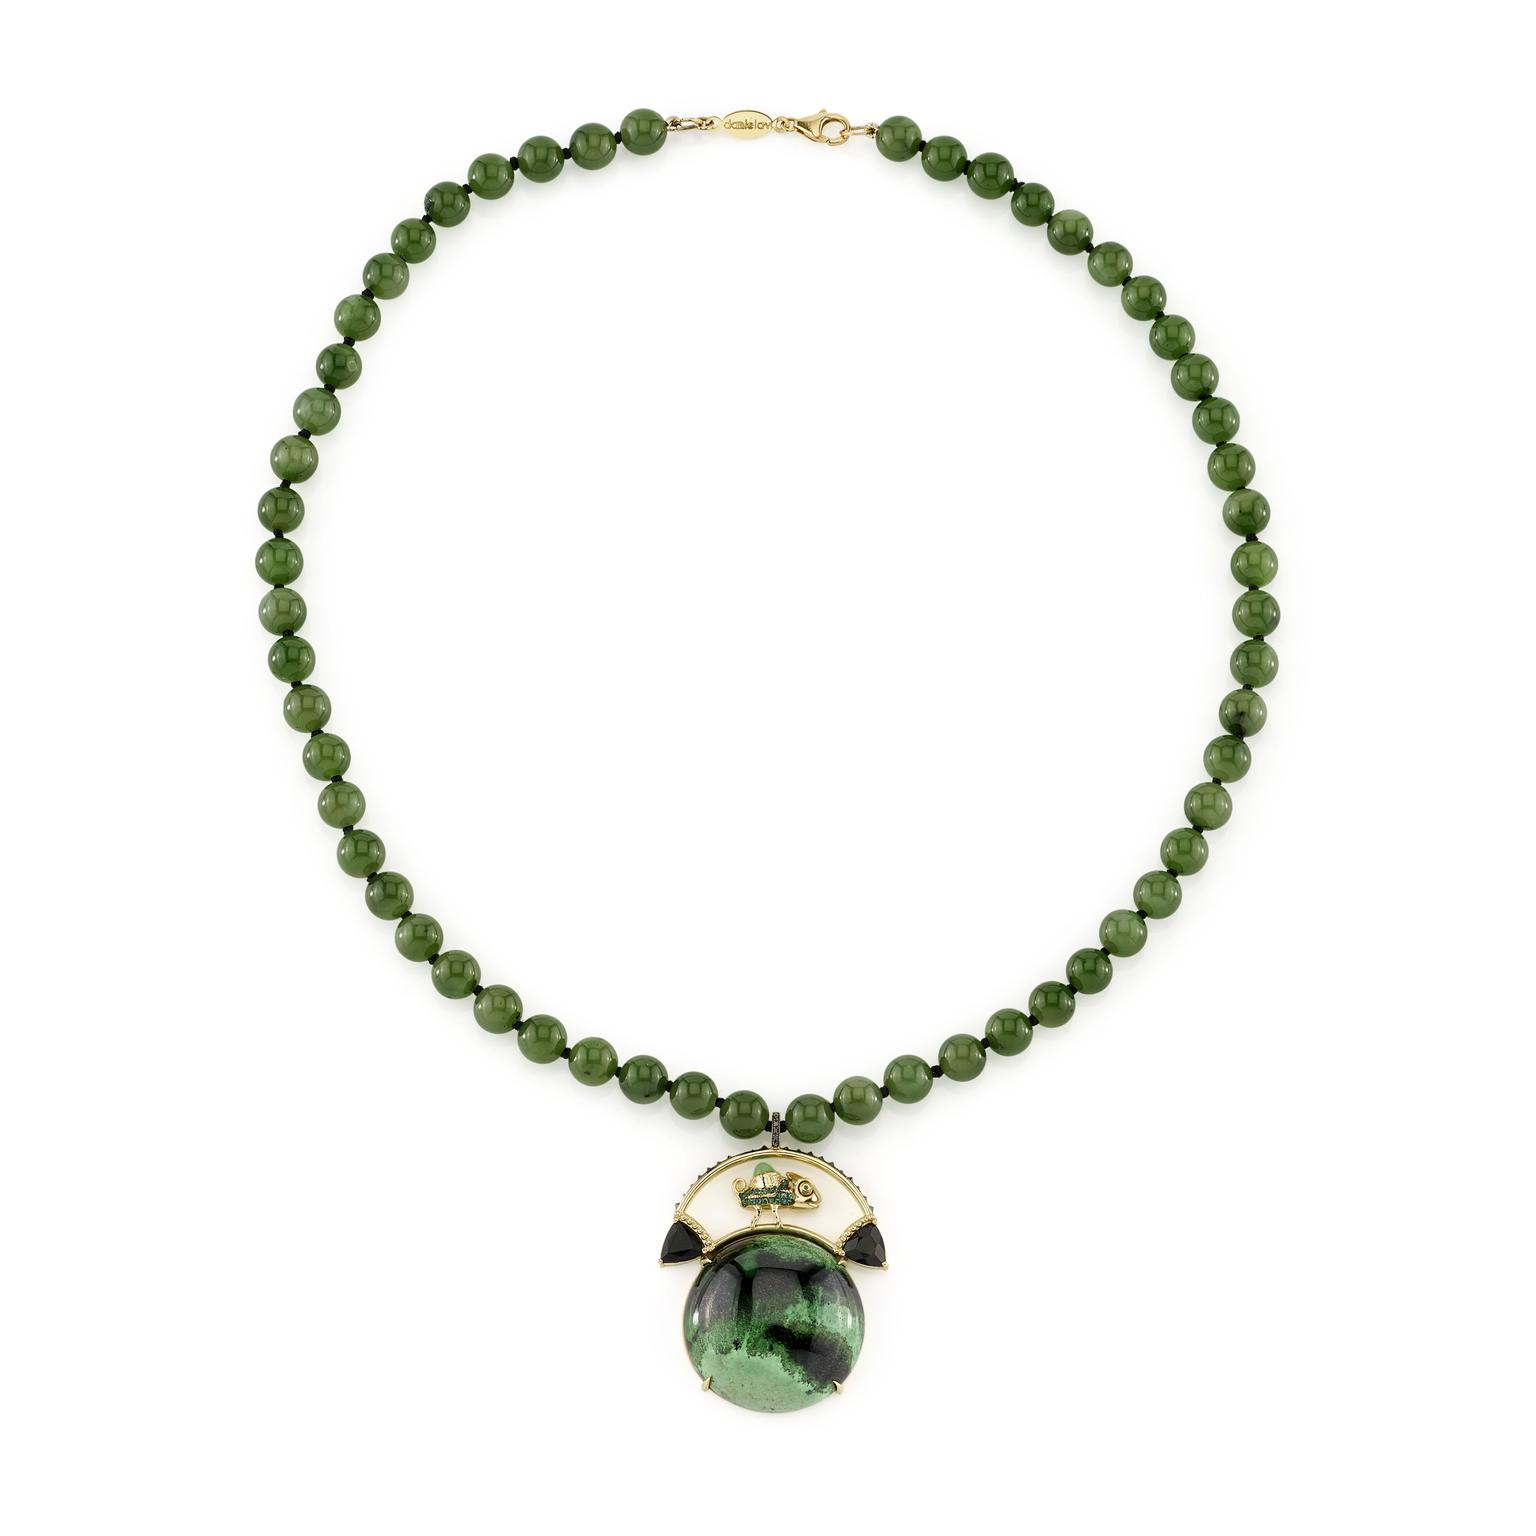 Confucius necklace from Daniela Villegas